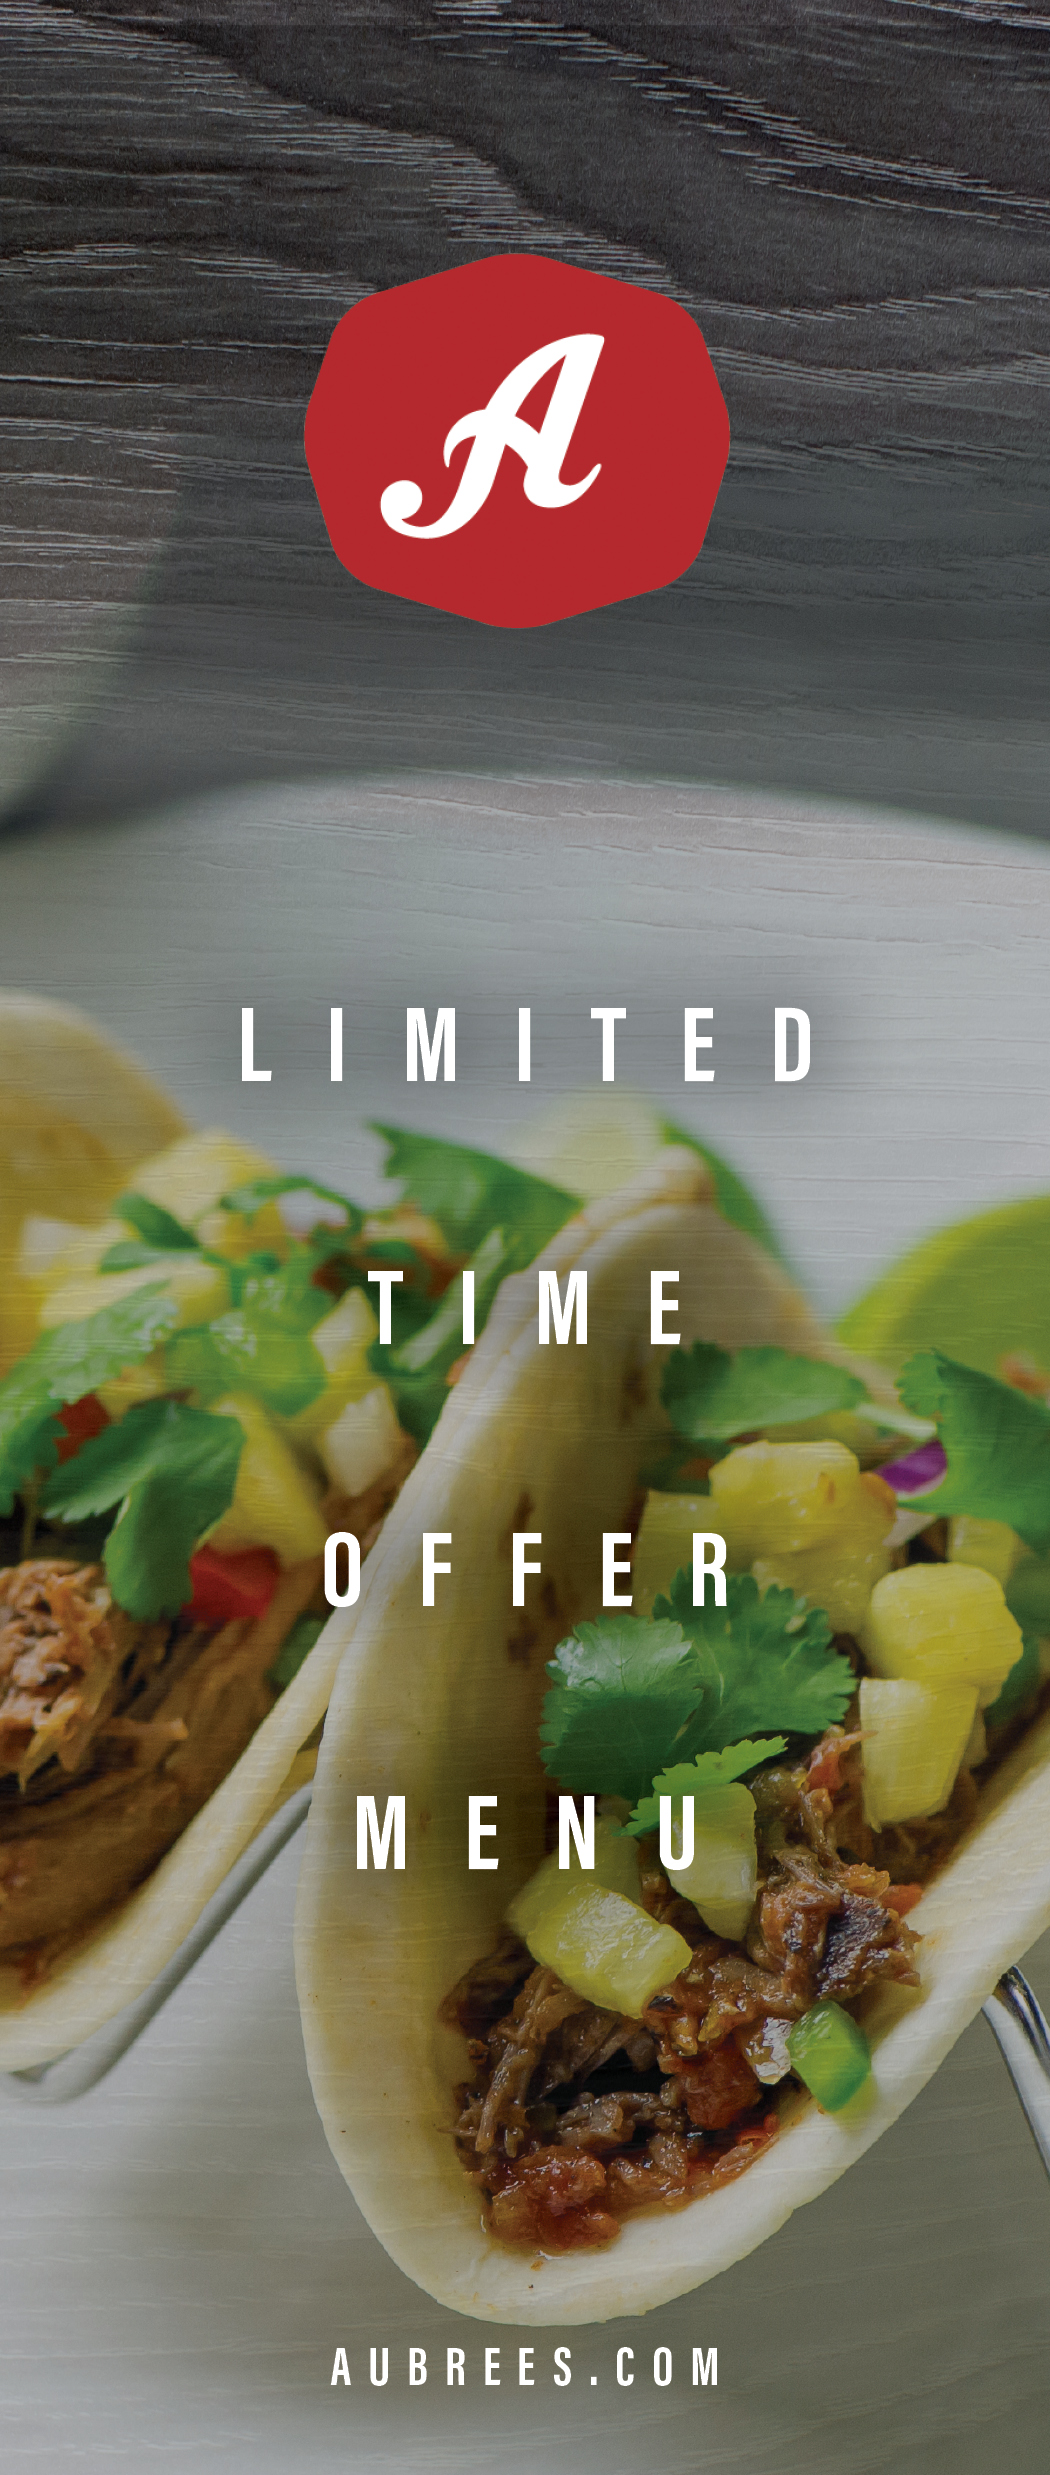 Limited Time Offer Menu